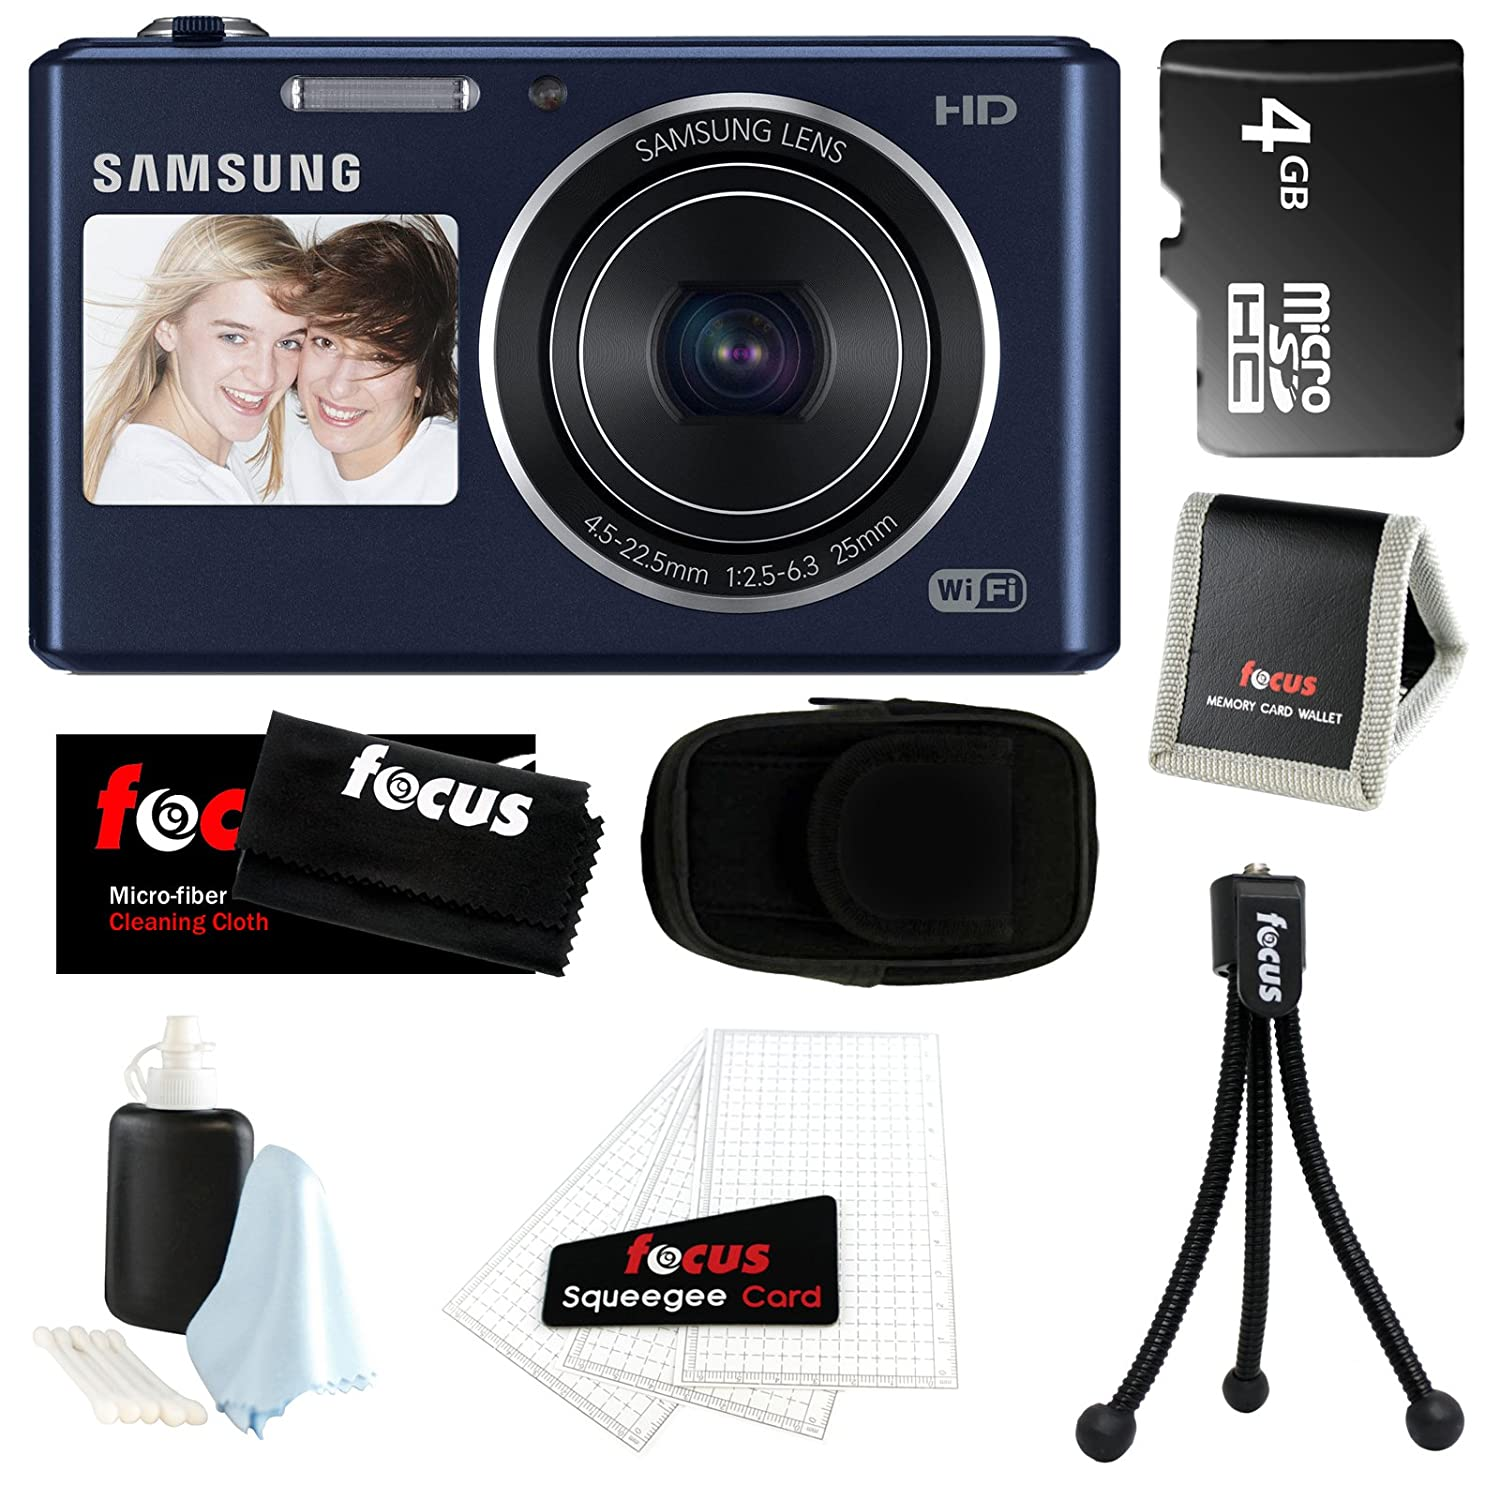 Samsung DV150F 16.2MP Dual-View Smart Camera w/ Built-in Wi-Fi in Cobalt Black + 4GB MicroSD HC Memory Card + More at Sears.com